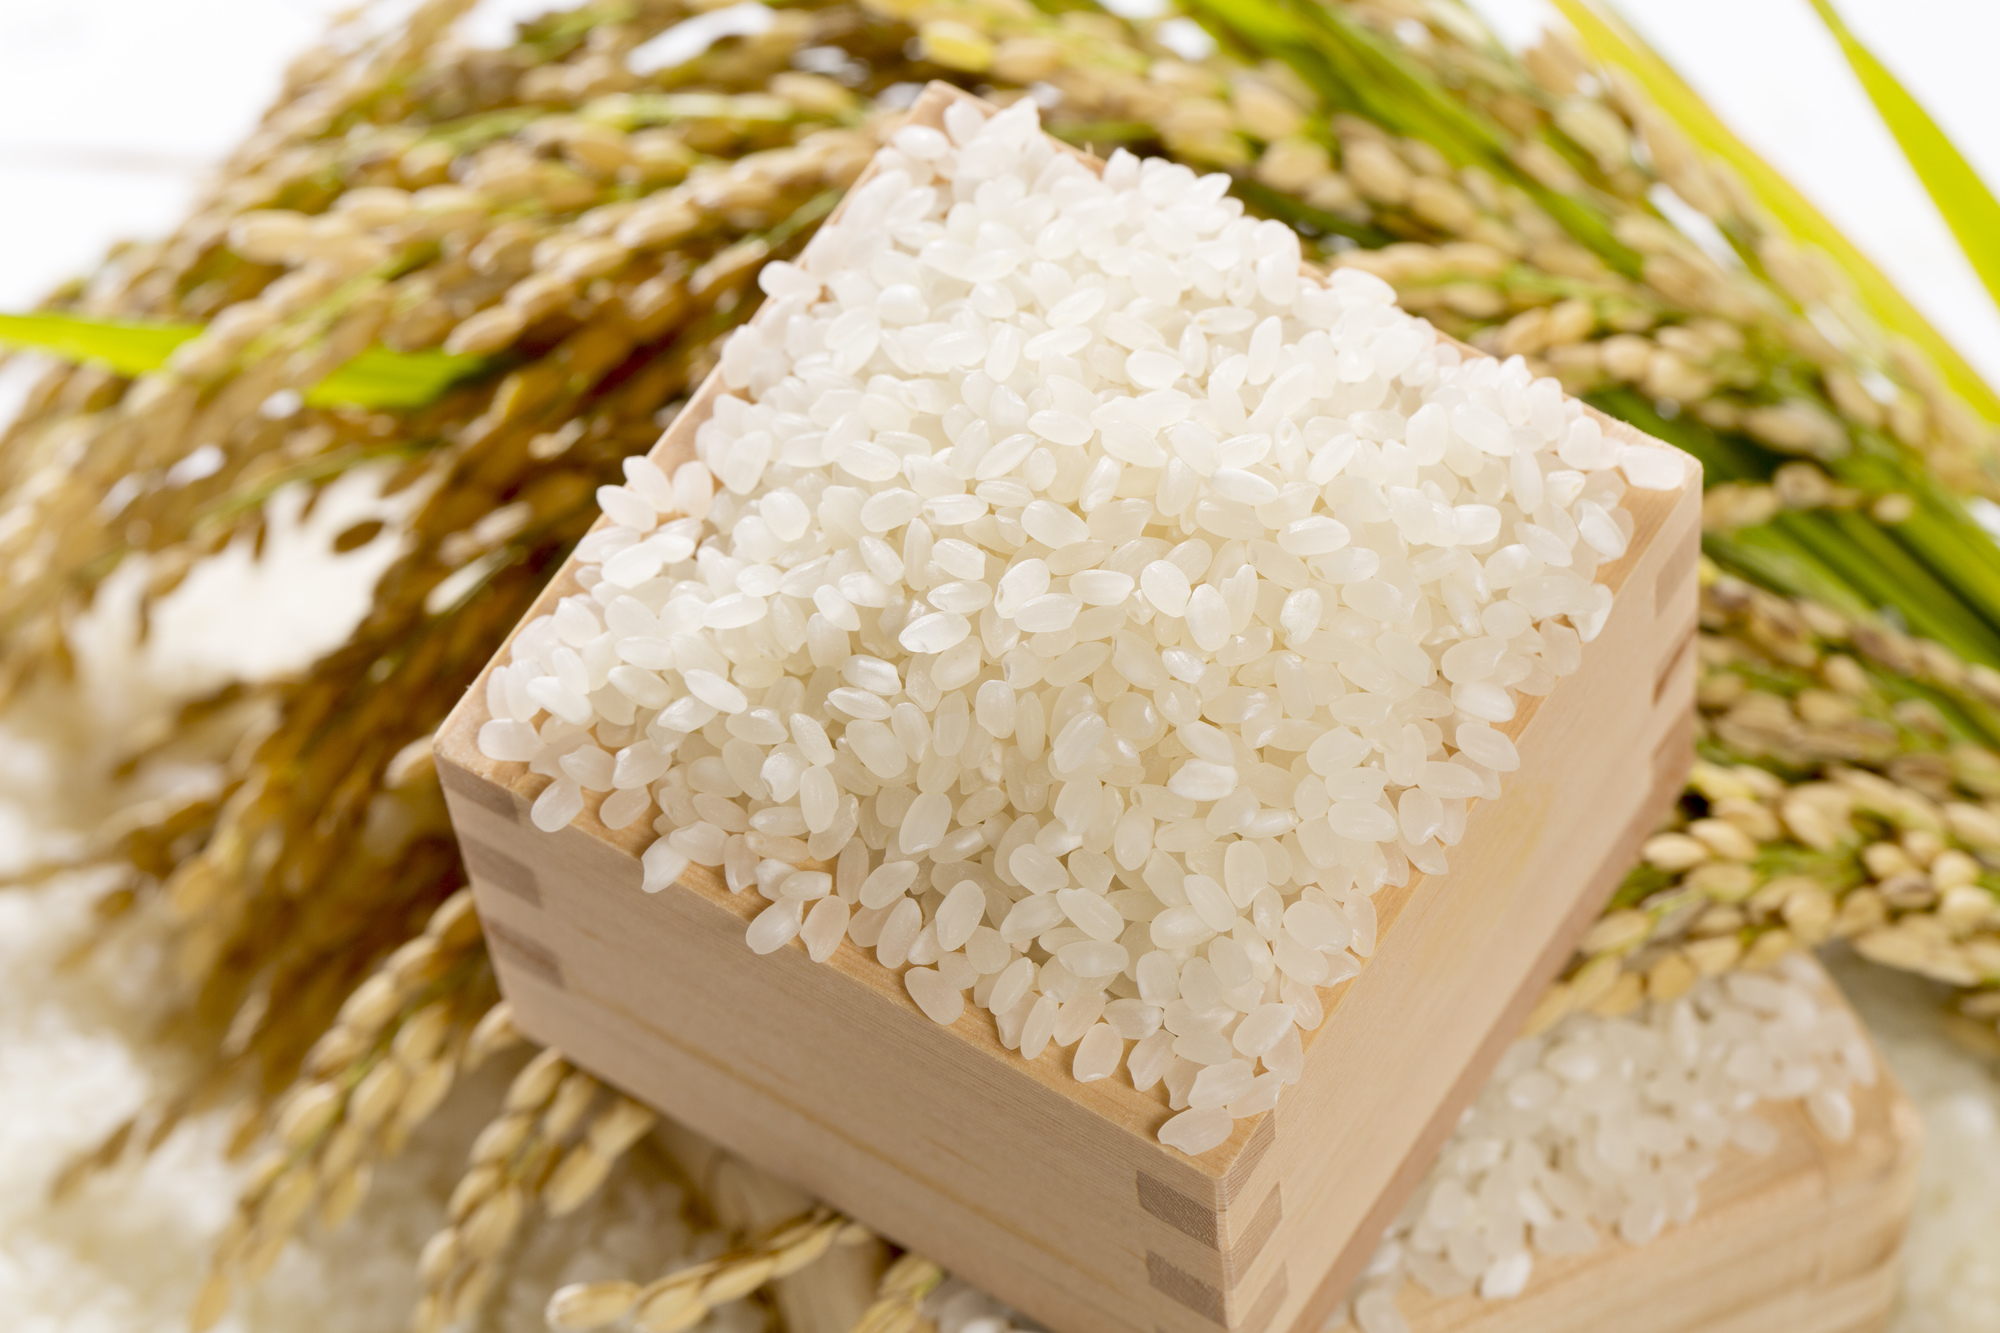 The birth myth of five grains retells not only the creation of grains but also that the concept of omotenashi (hospitality) existed since that time.